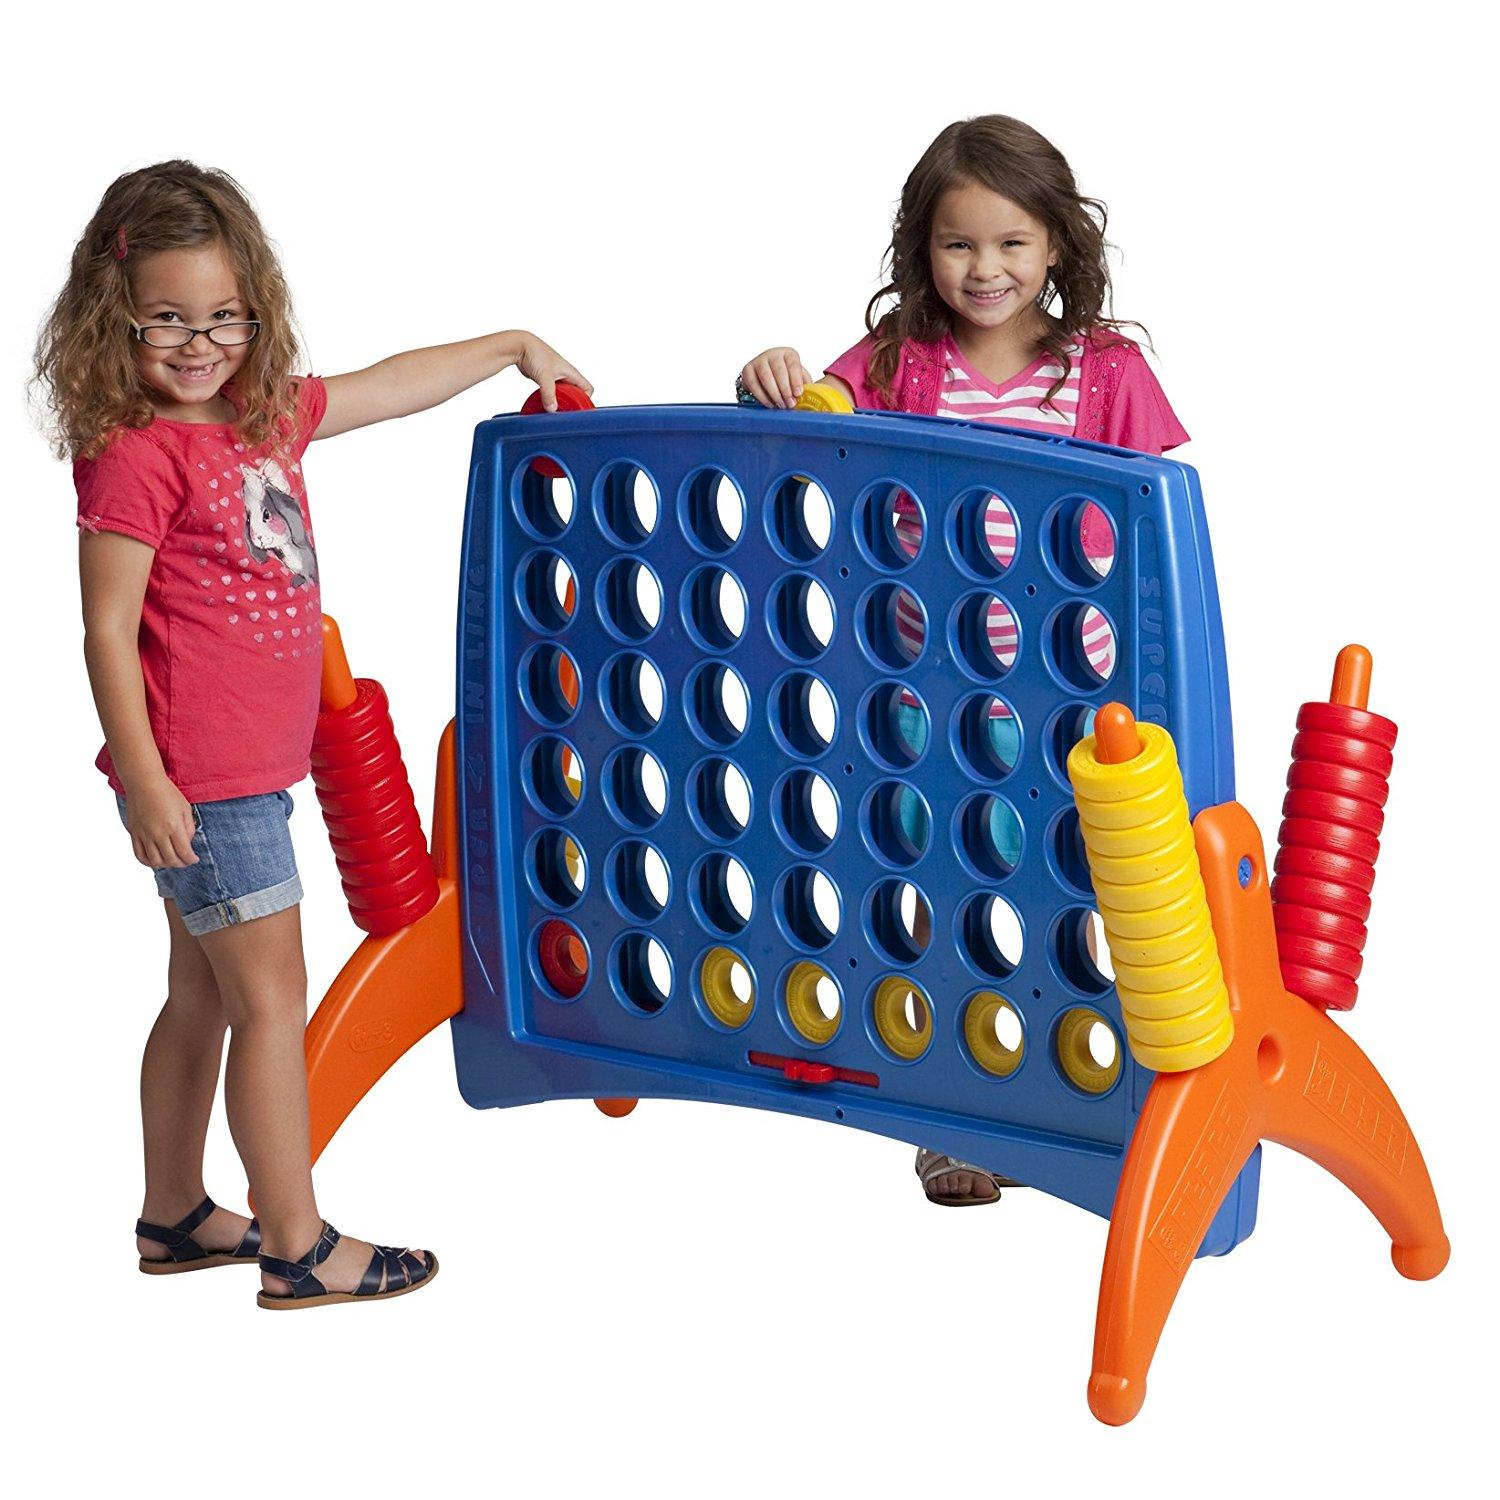 4-To-Score Oversized Game Kids